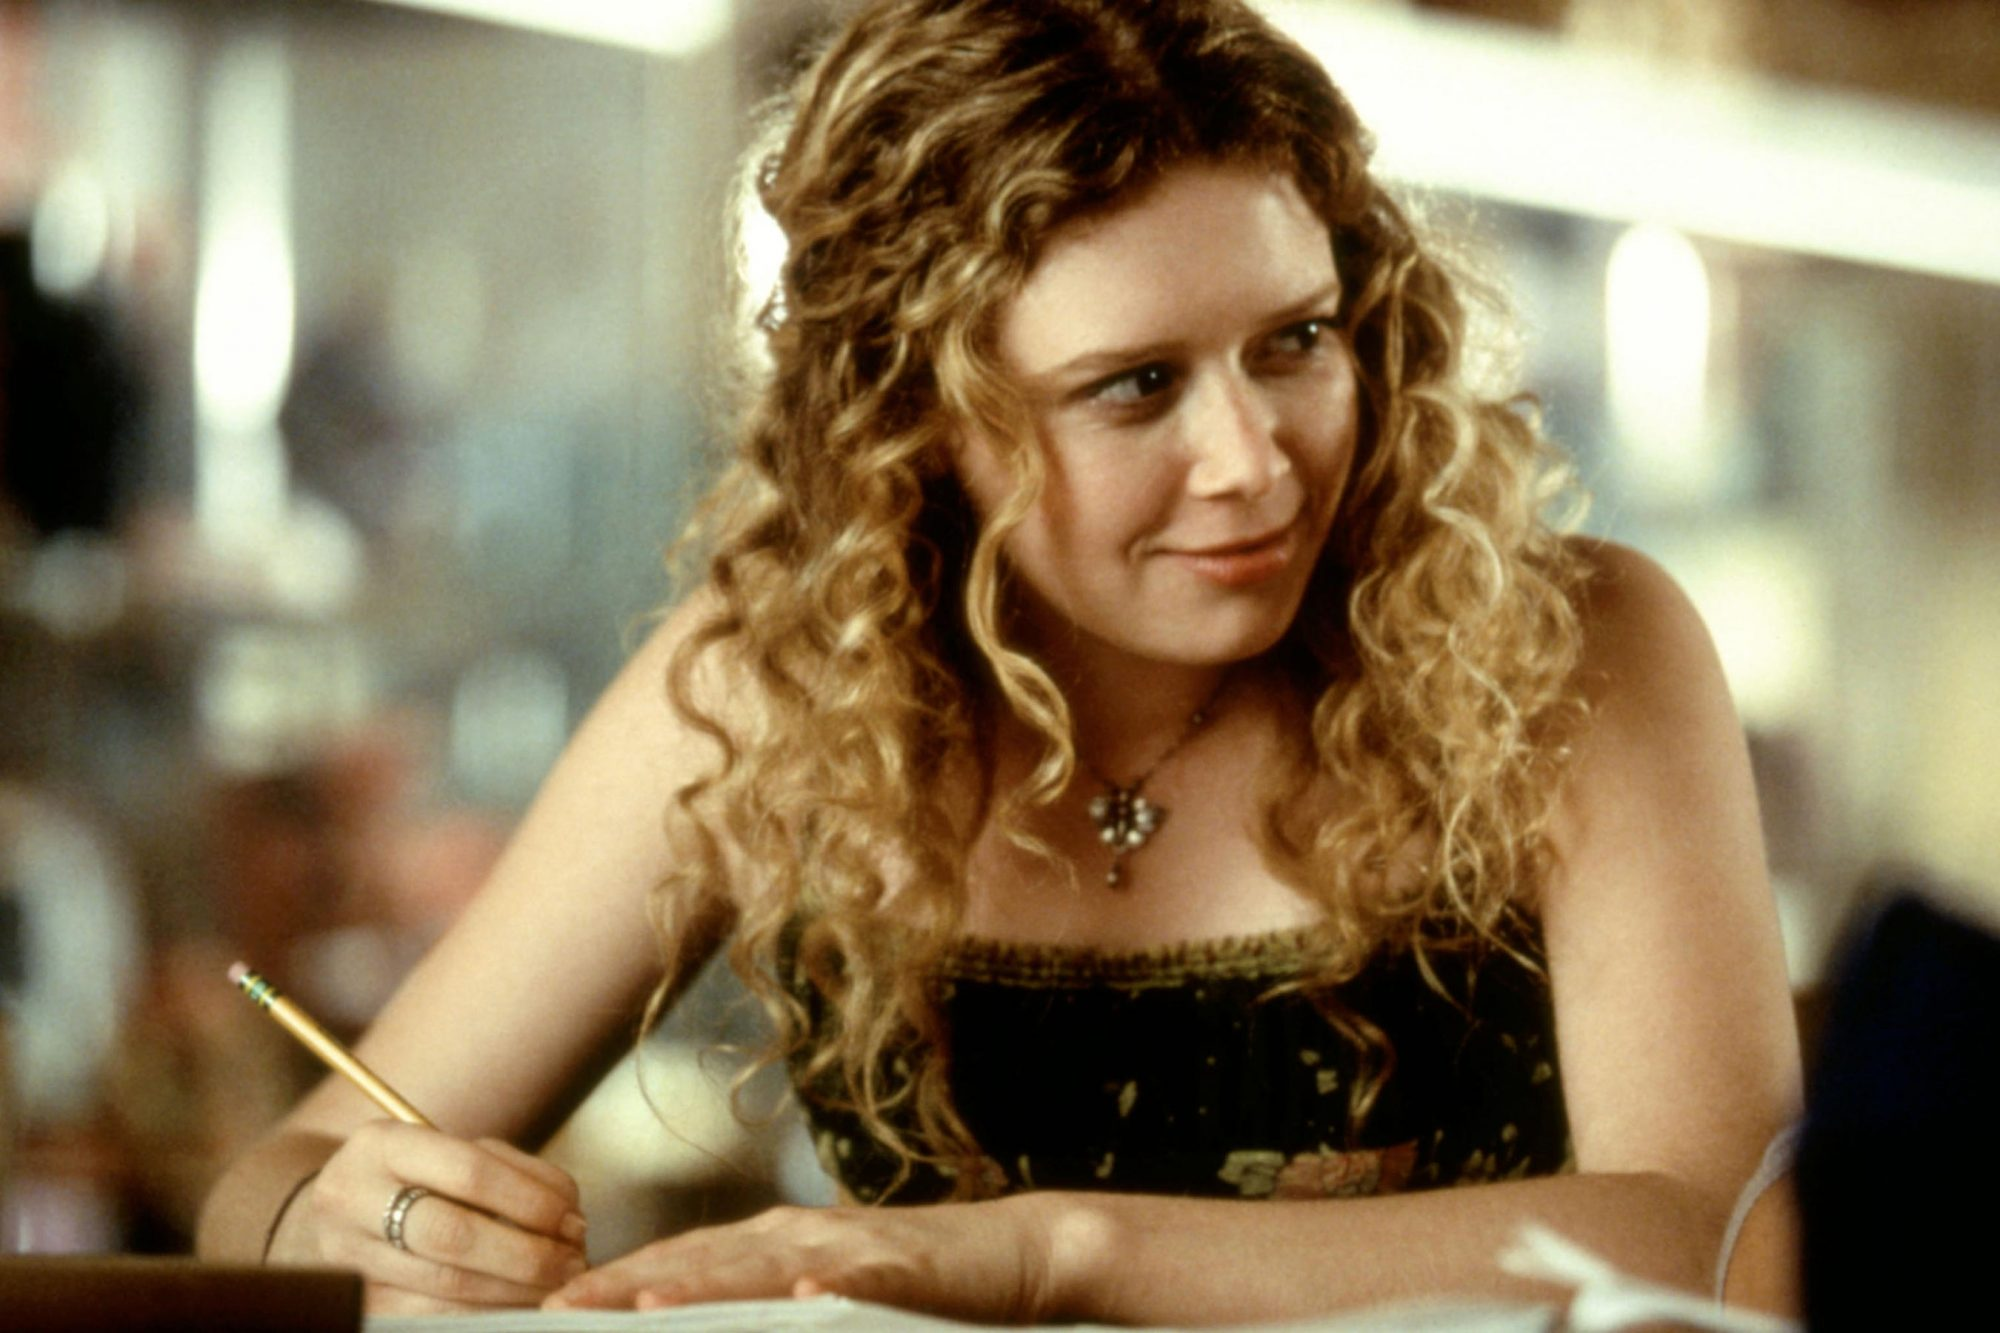 AMERICAN PIE, Natasha Lyonne, 1999, (c)Universal/courtesy Everett Collection